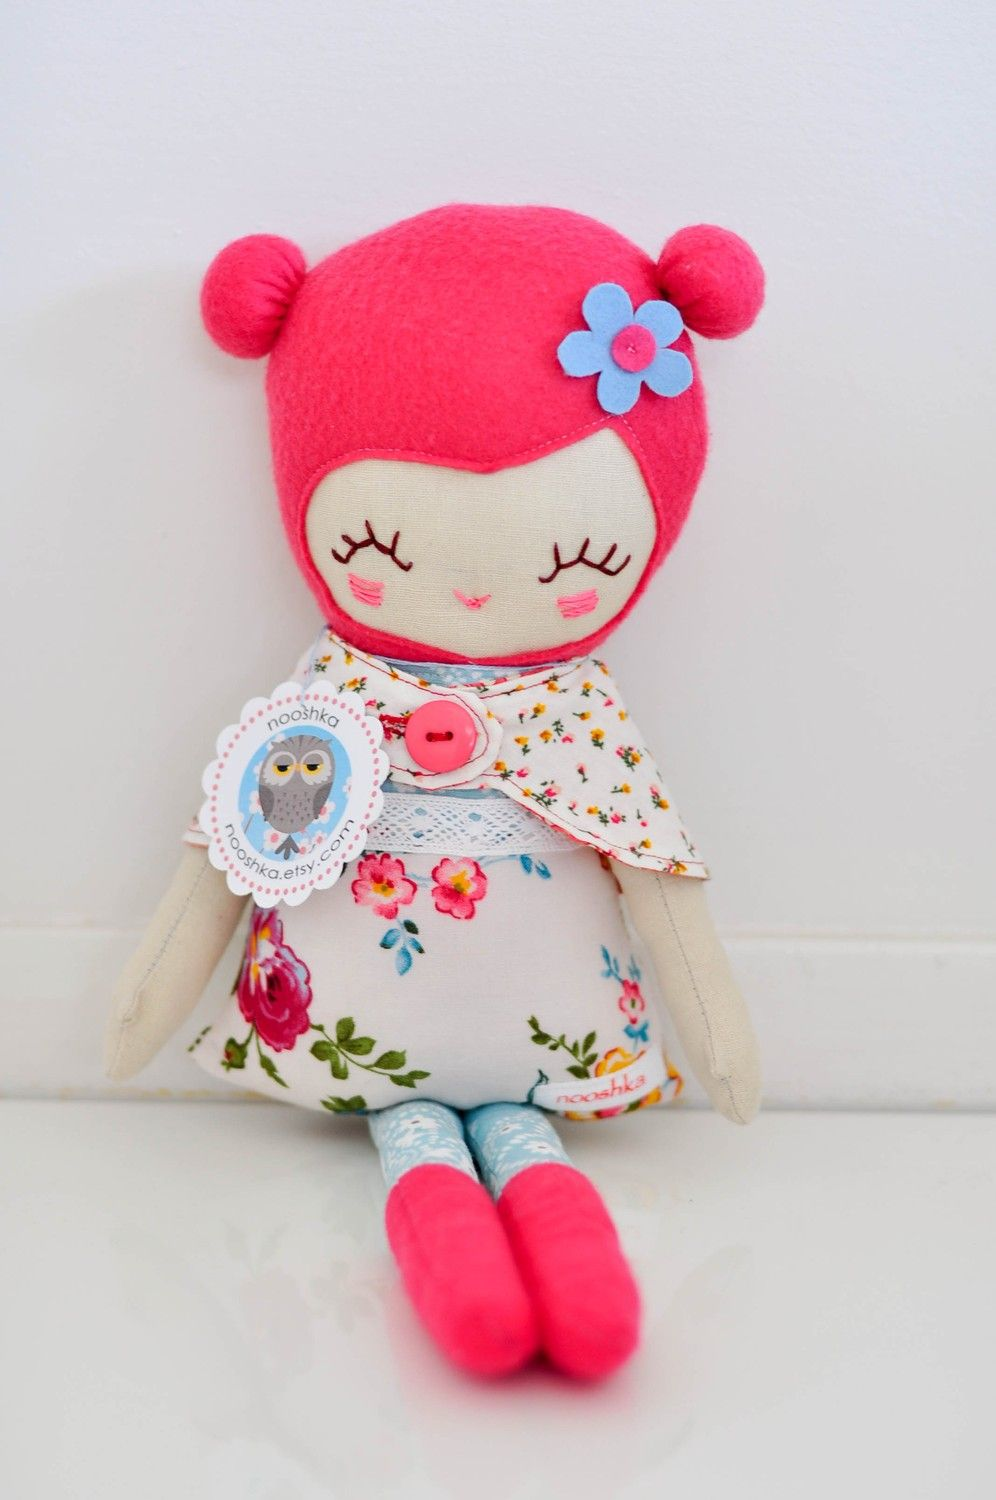 Love LuLu handmade plush doll made in Australia. sold out, but oh so cute :)